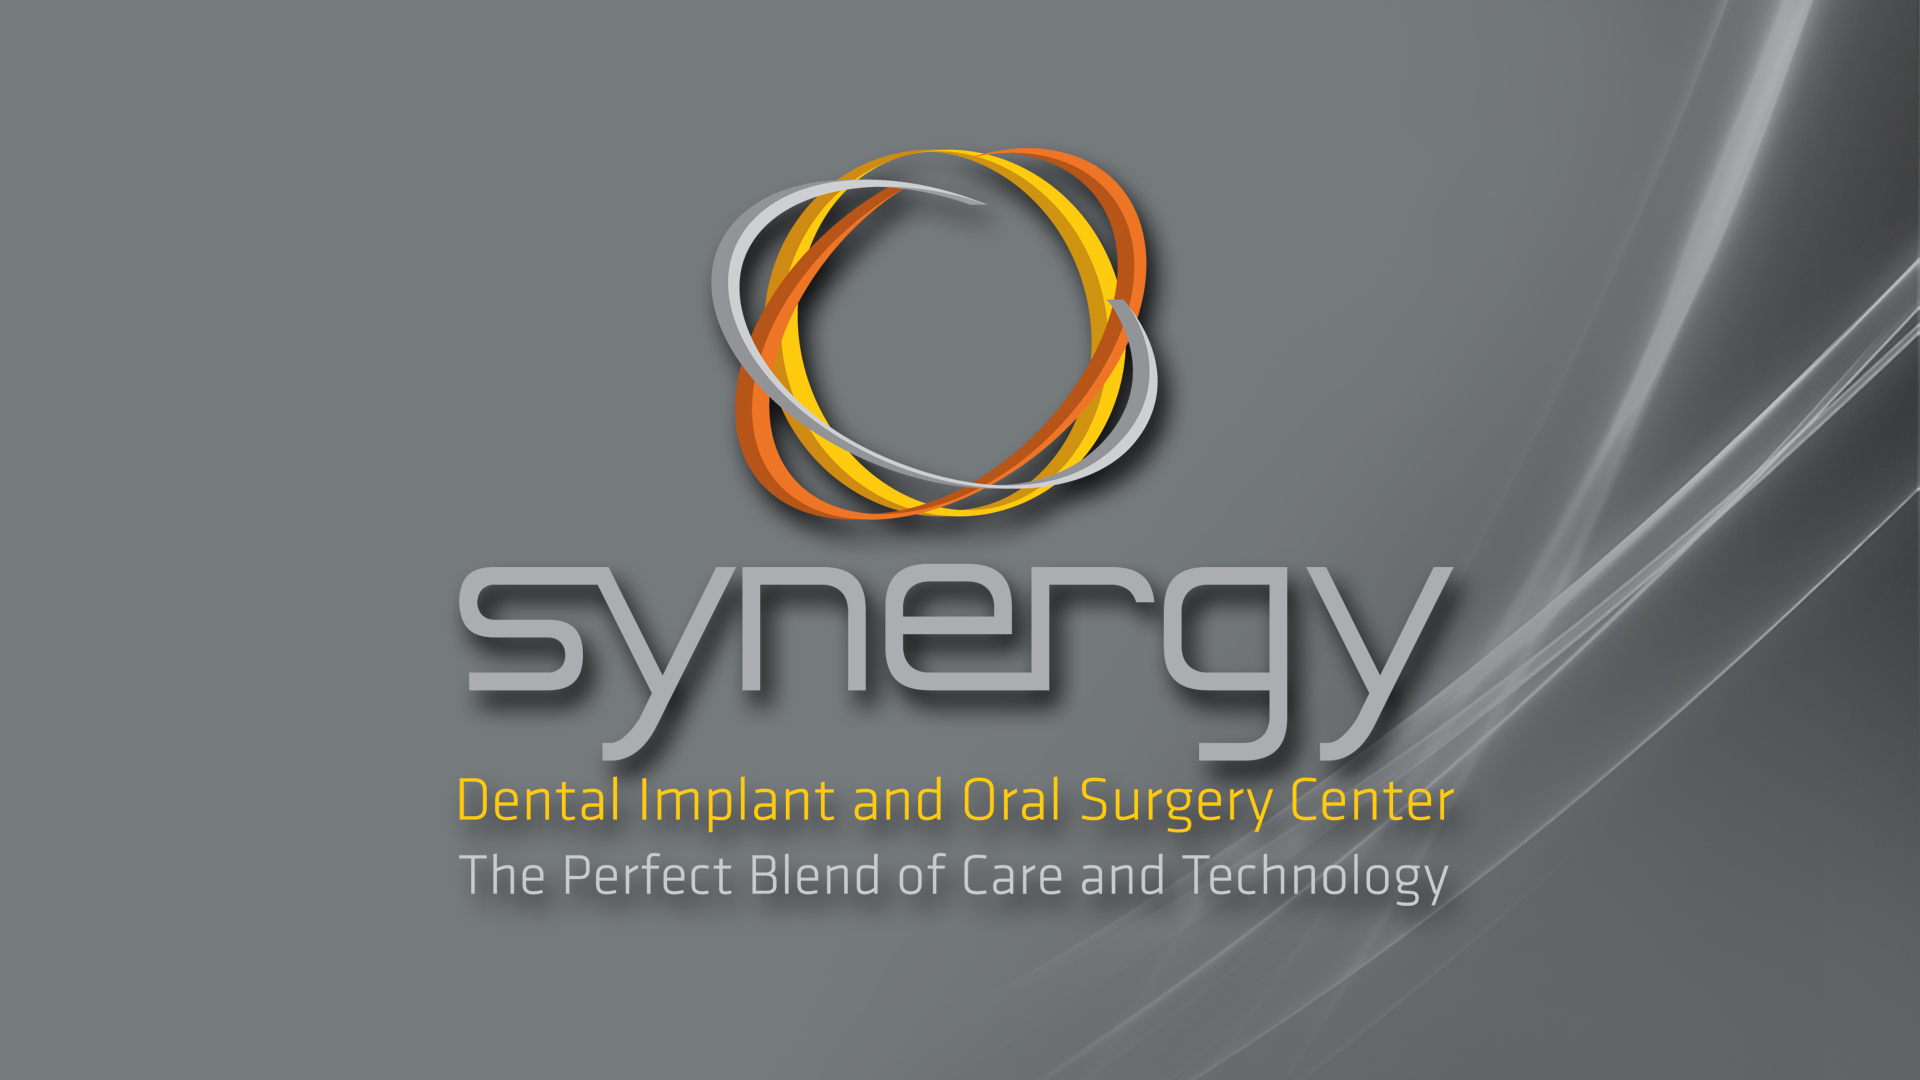 Synergy Dental Implant and Oral Surgery Center